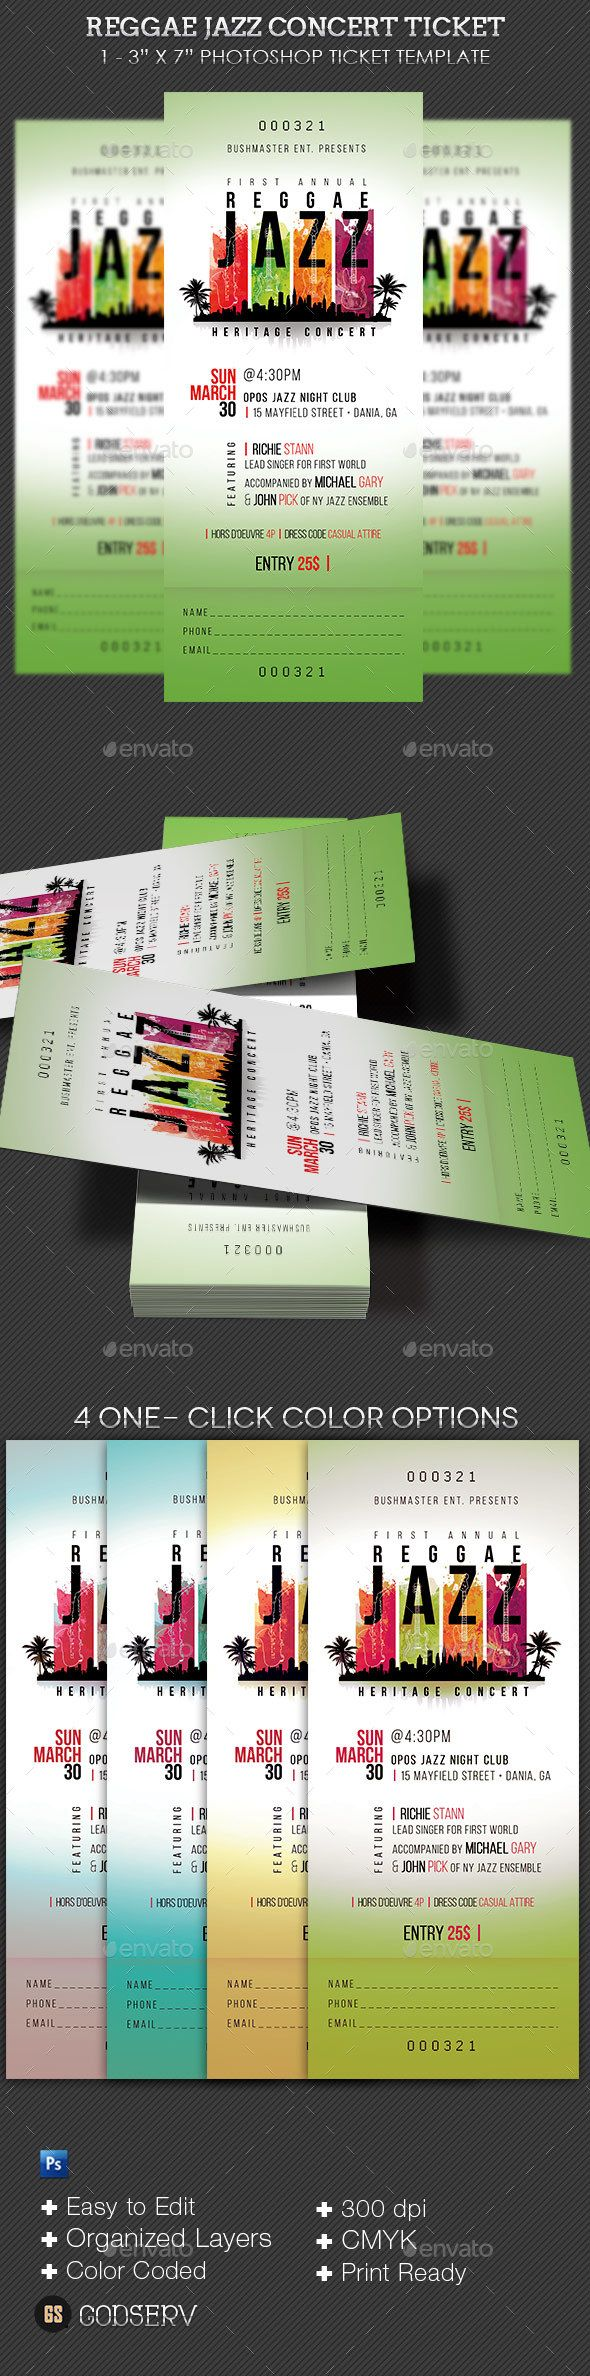 Reggae Jazz #Event #Ticket Template - Miscellaneous Print Templates Download here: https://graphicriver.net/item/reggae-jazz-event-ticket-template/19535232?ref=alena994